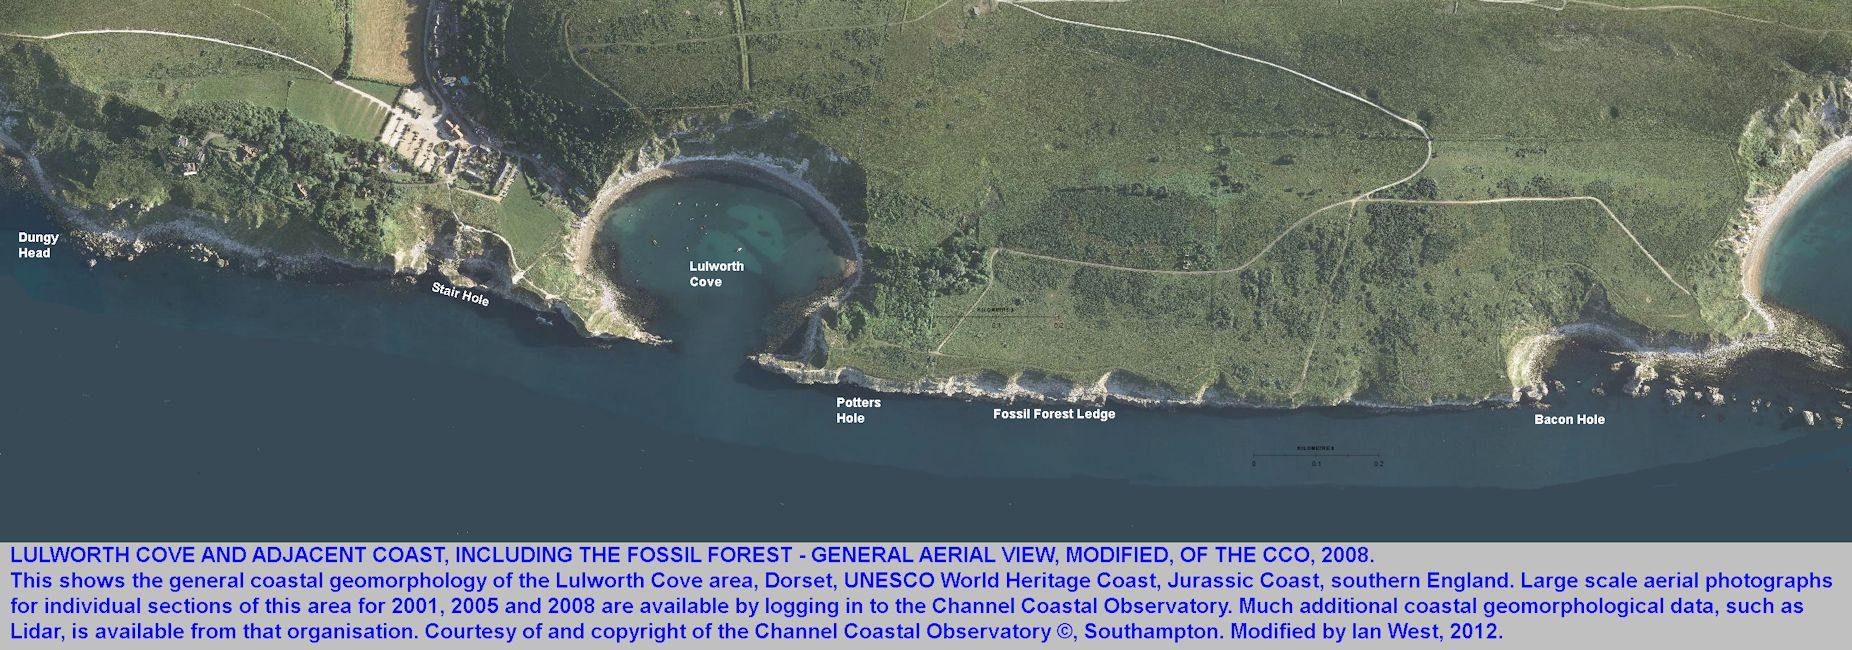 Aerial photograph showing Lulworth Cove, the Fossil Forest ledge, Bacon Hole, Stair Hole and Dungy Head, Dorset, Channel Coastal Observatory